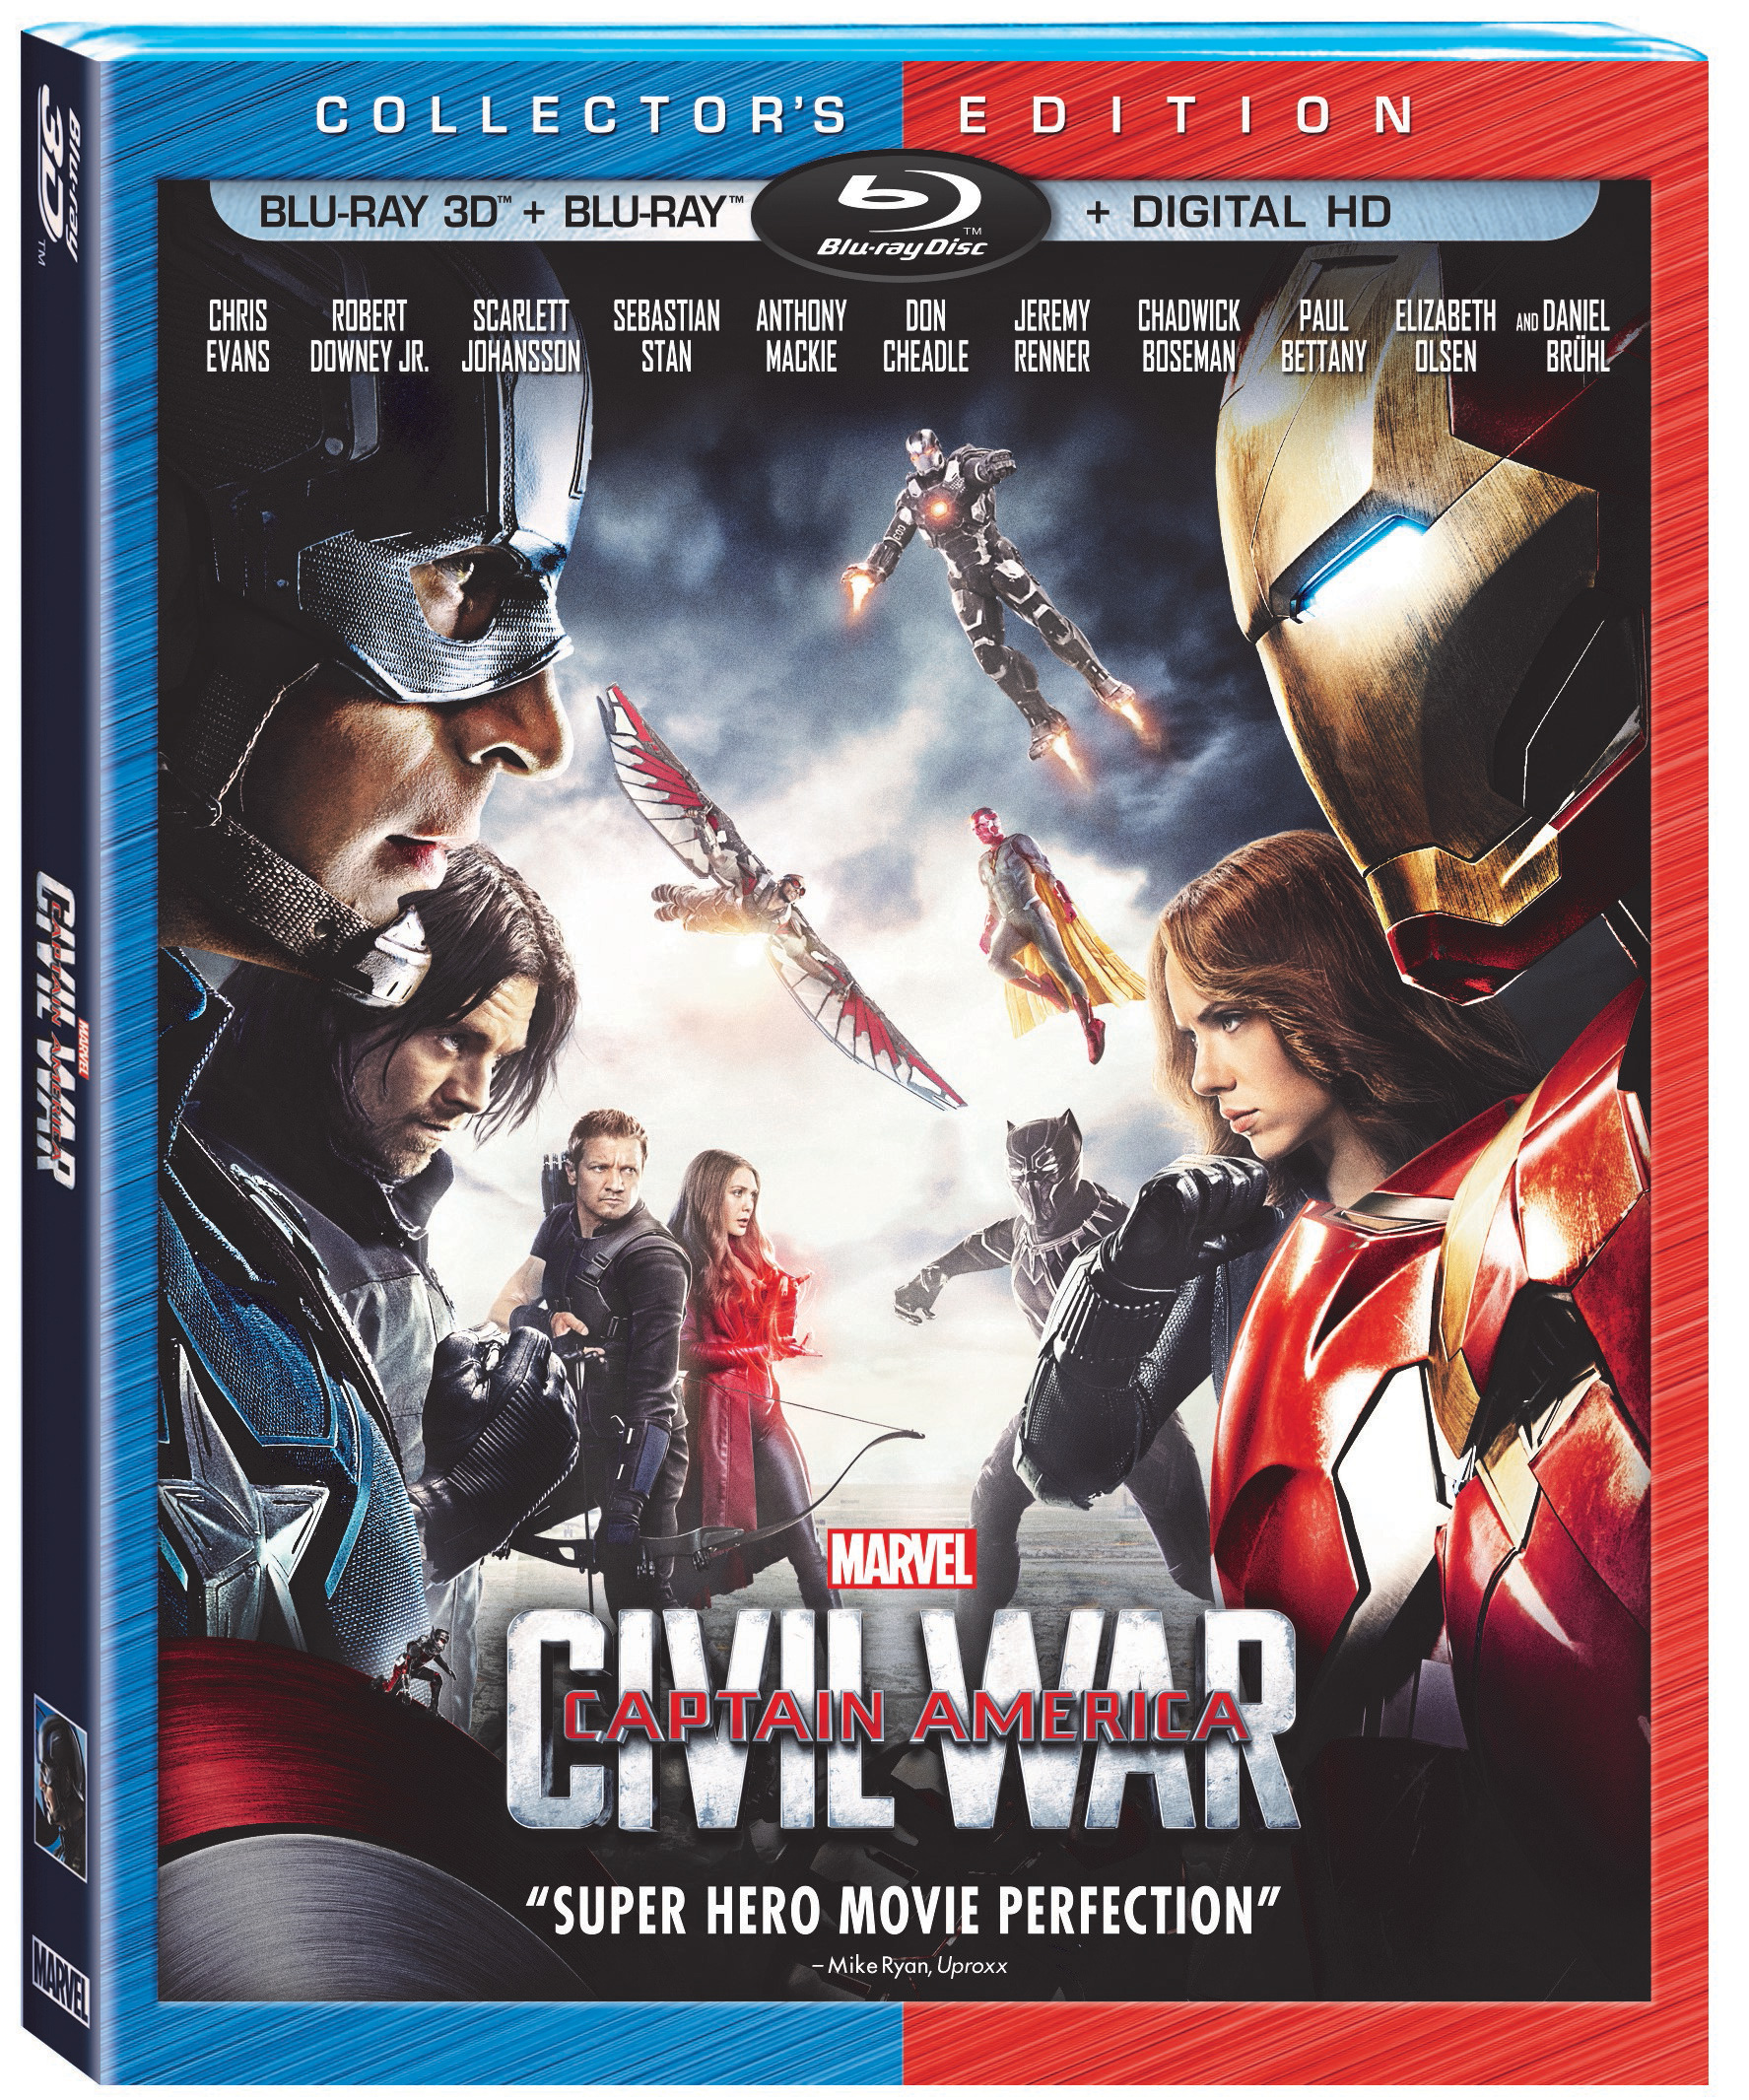 captain america civil war blu ray 3d blu ray dvd and digital release date and details thehdroom. Black Bedroom Furniture Sets. Home Design Ideas